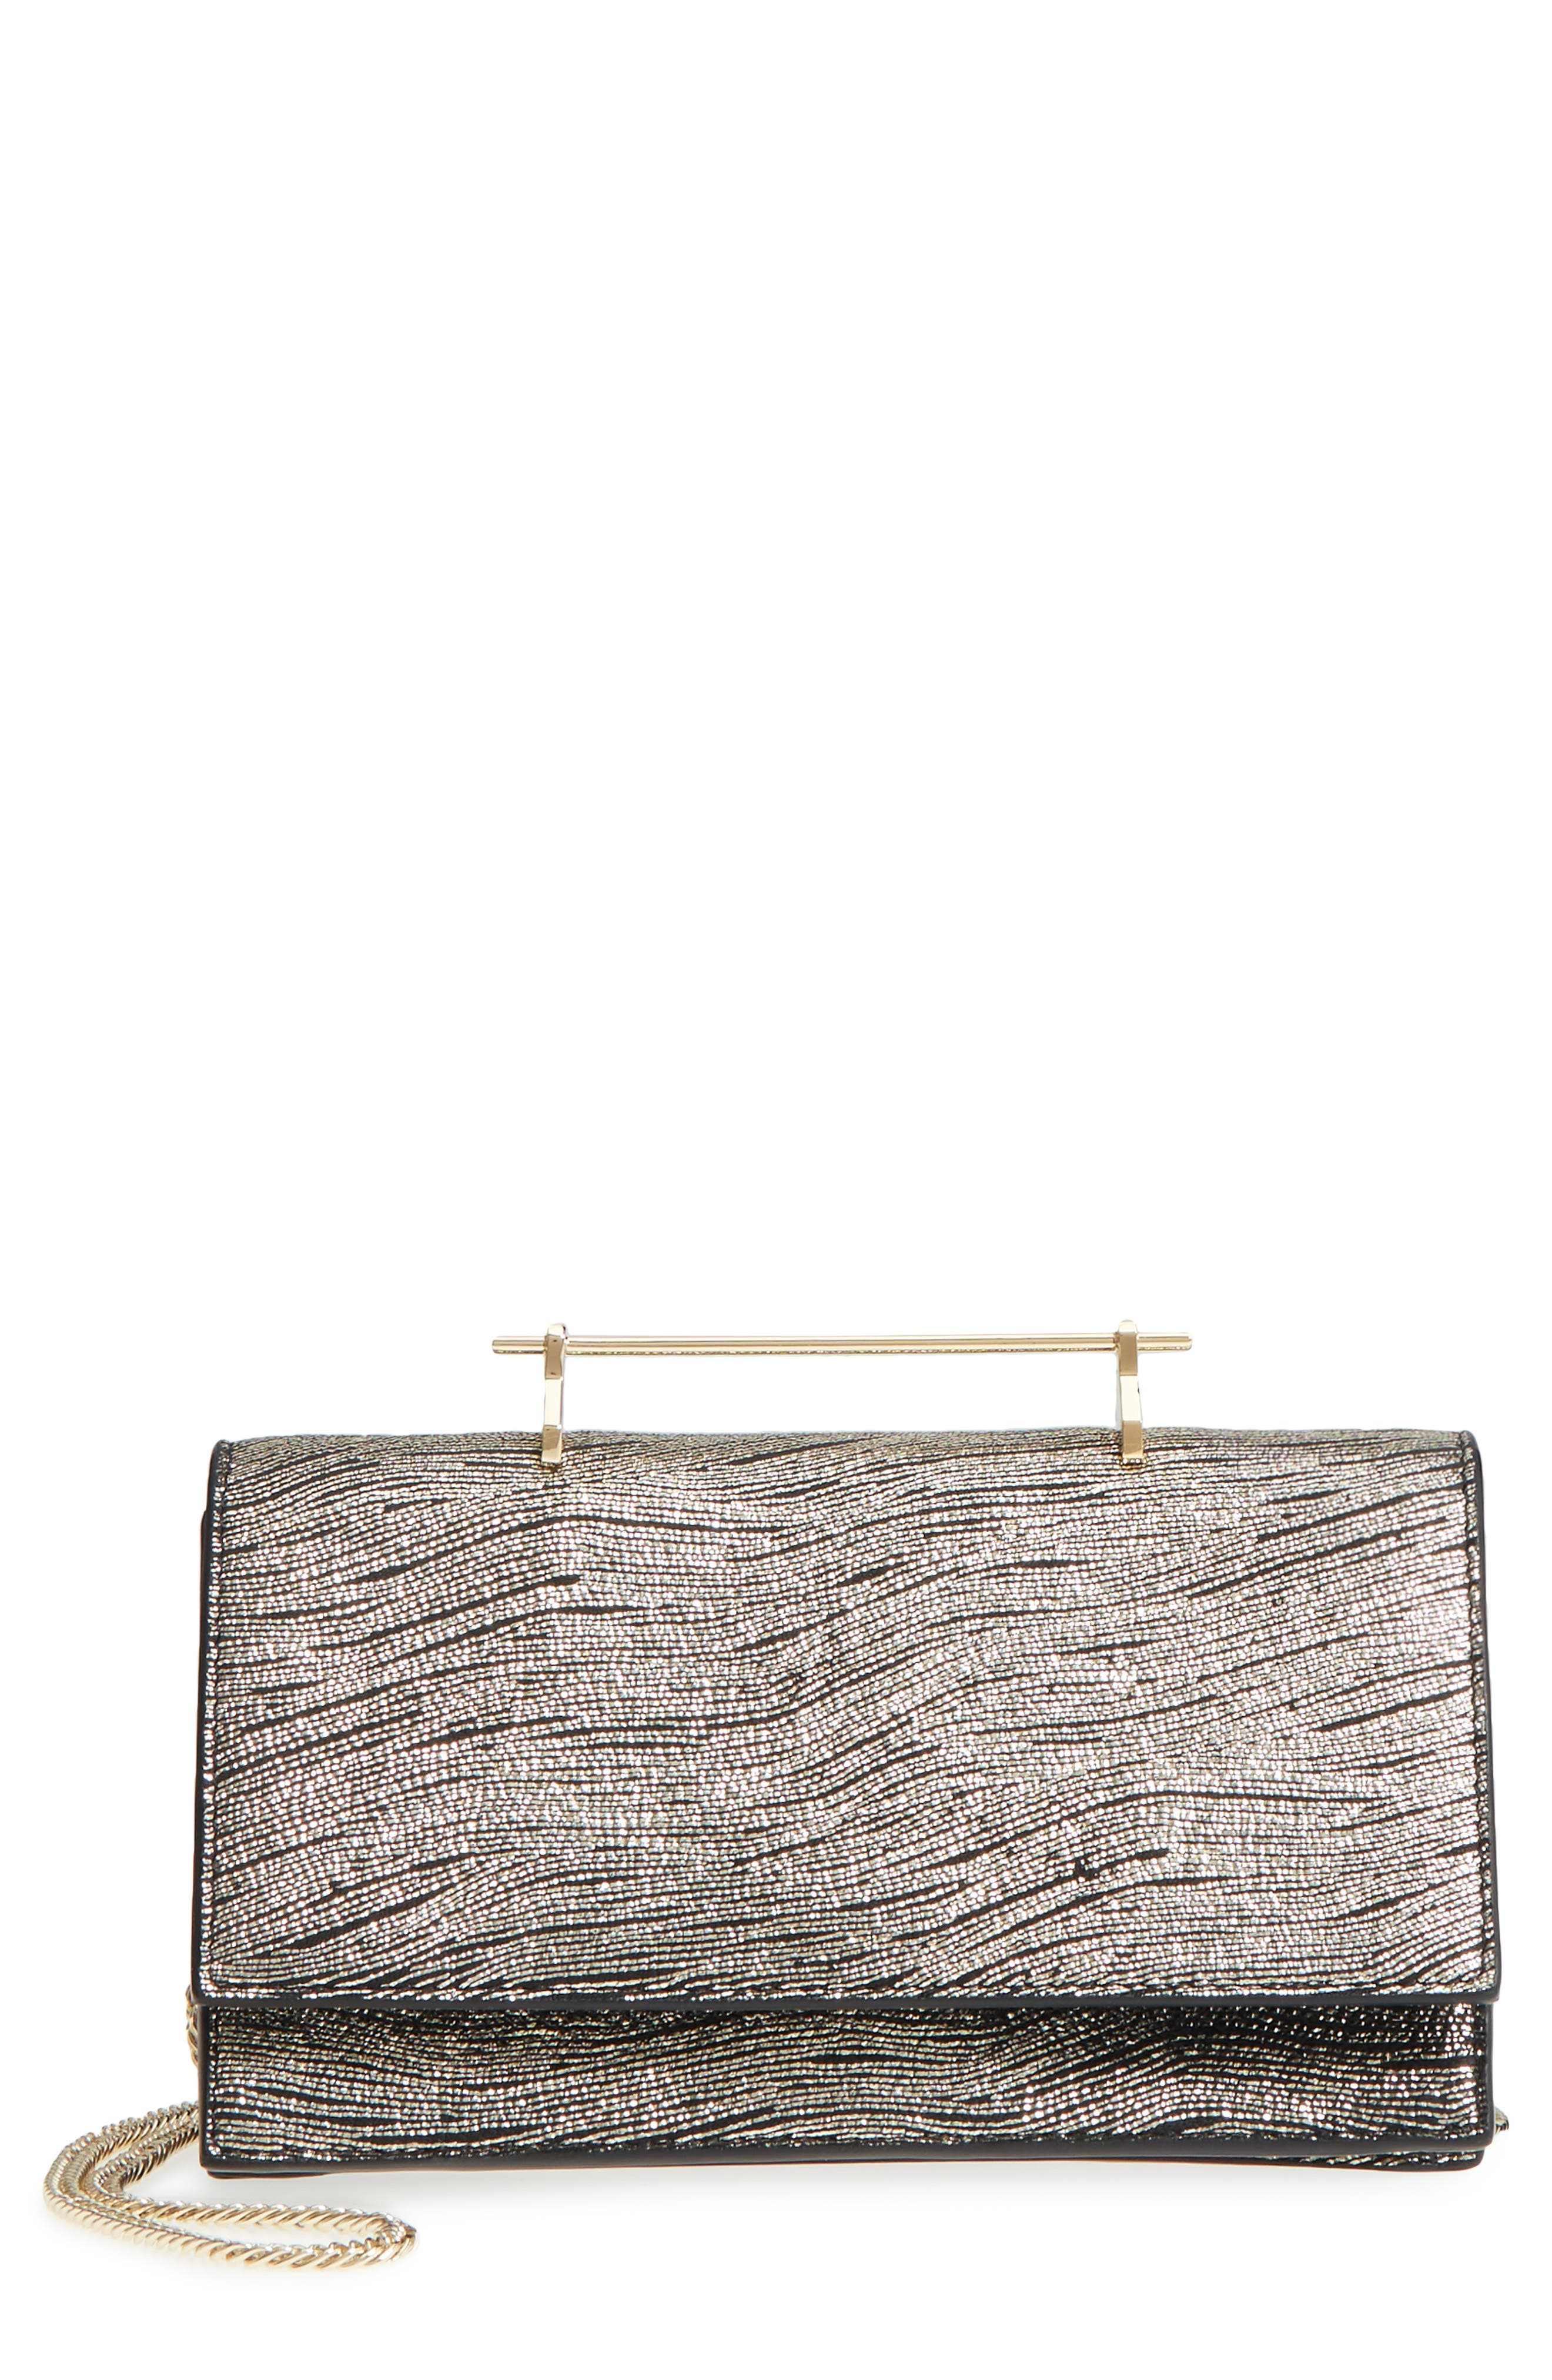 M2Malletier Alexia Metallic Calfskin Leather Clutch